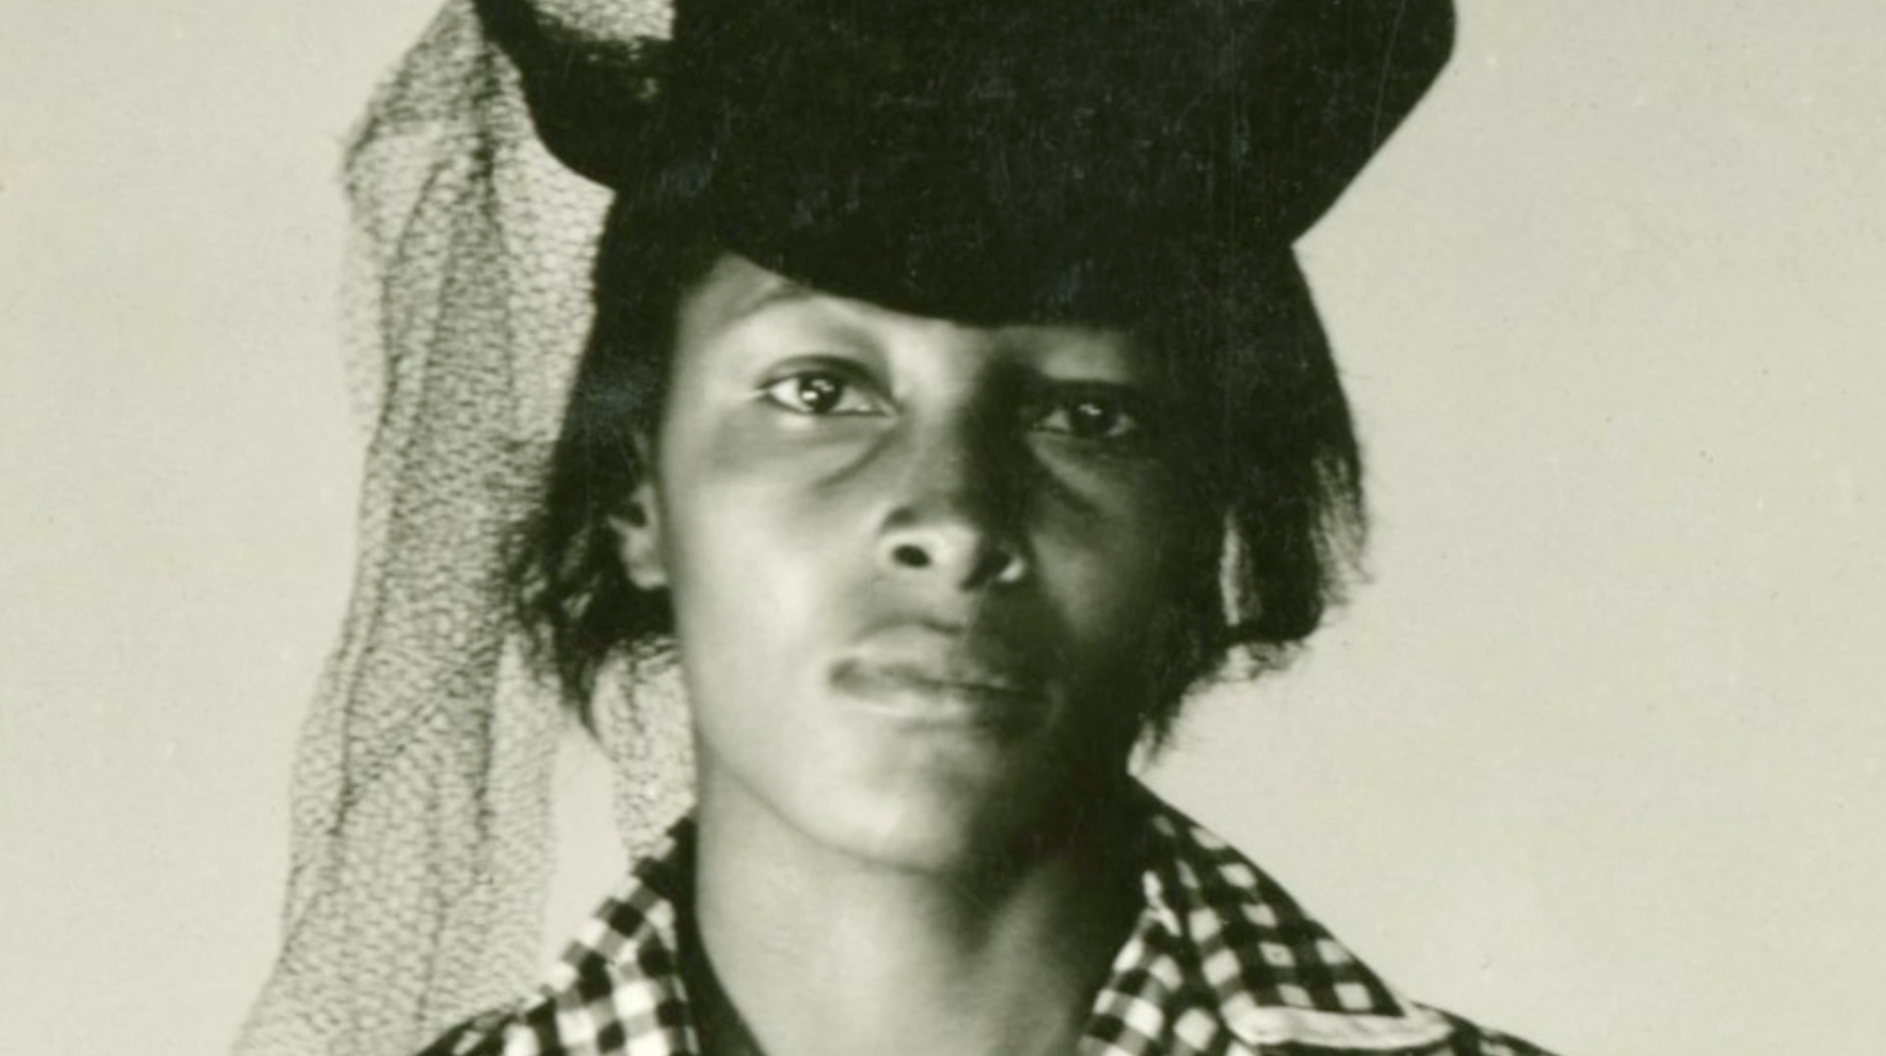 011218-07-Recy-Taylor-Women-1.png